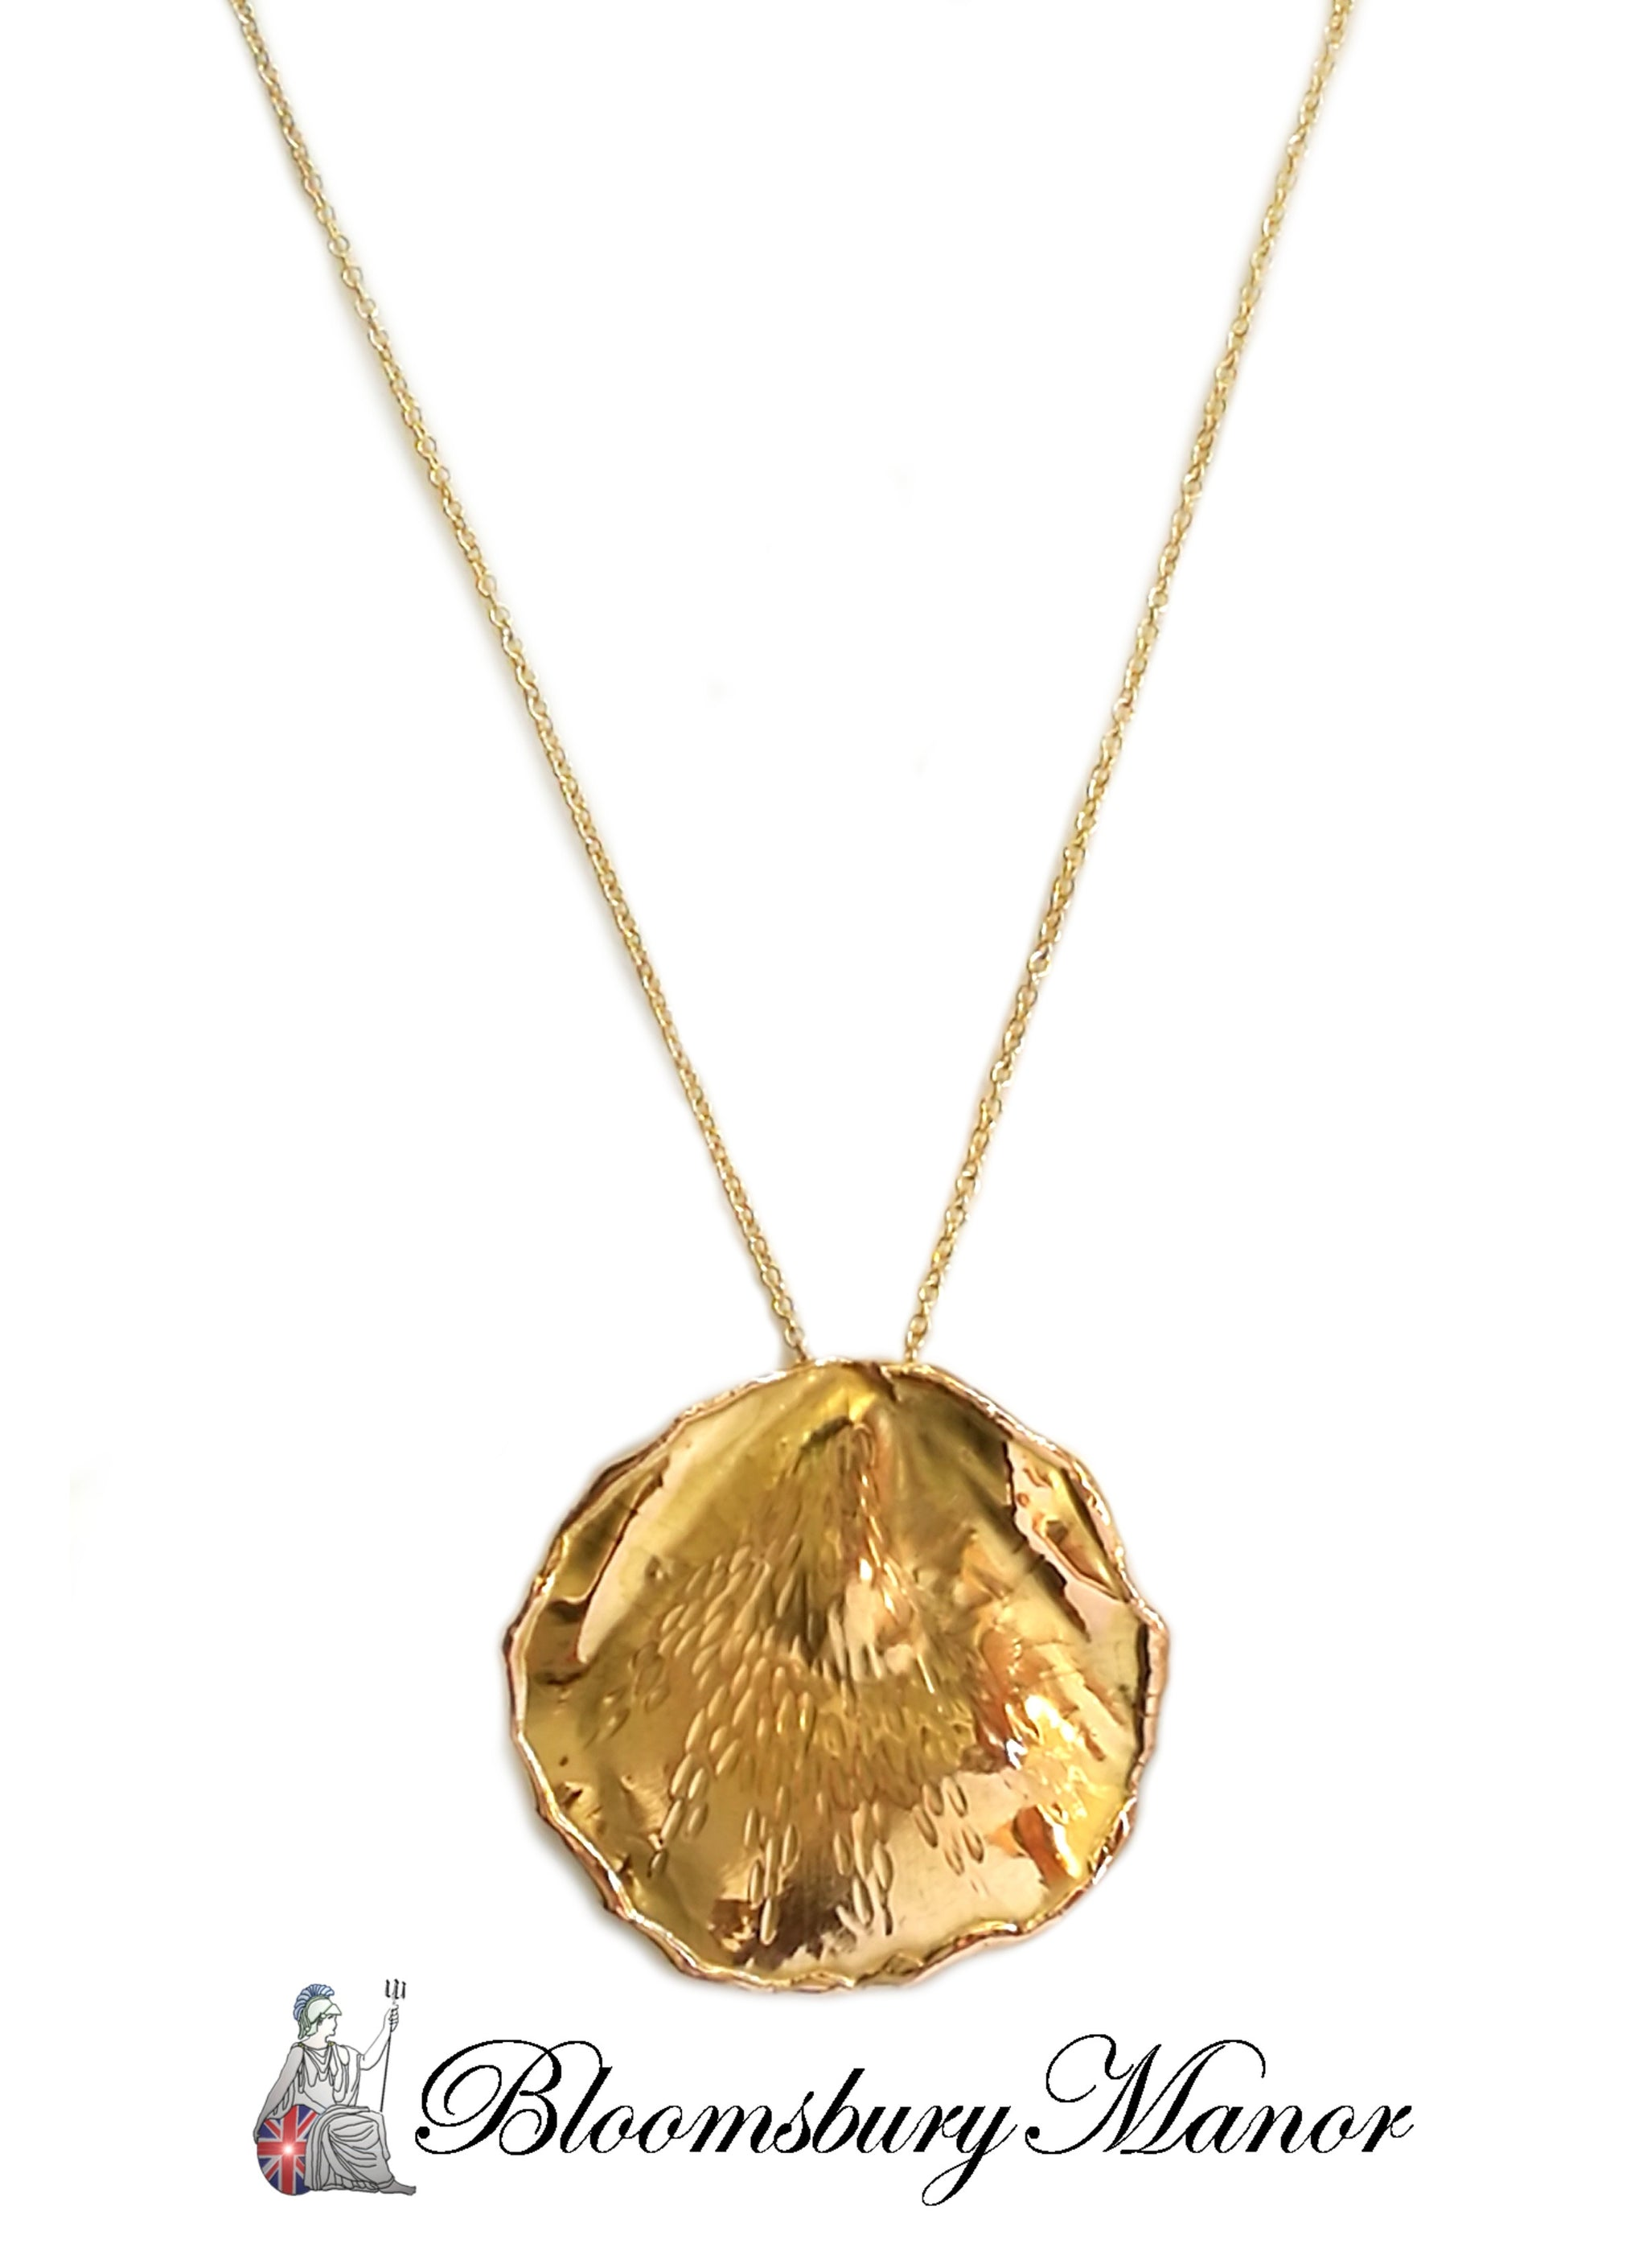 Tiffany & Co 1979 Angela Cummings 18k Yellow Gold Rose Petal Pendant Necklace